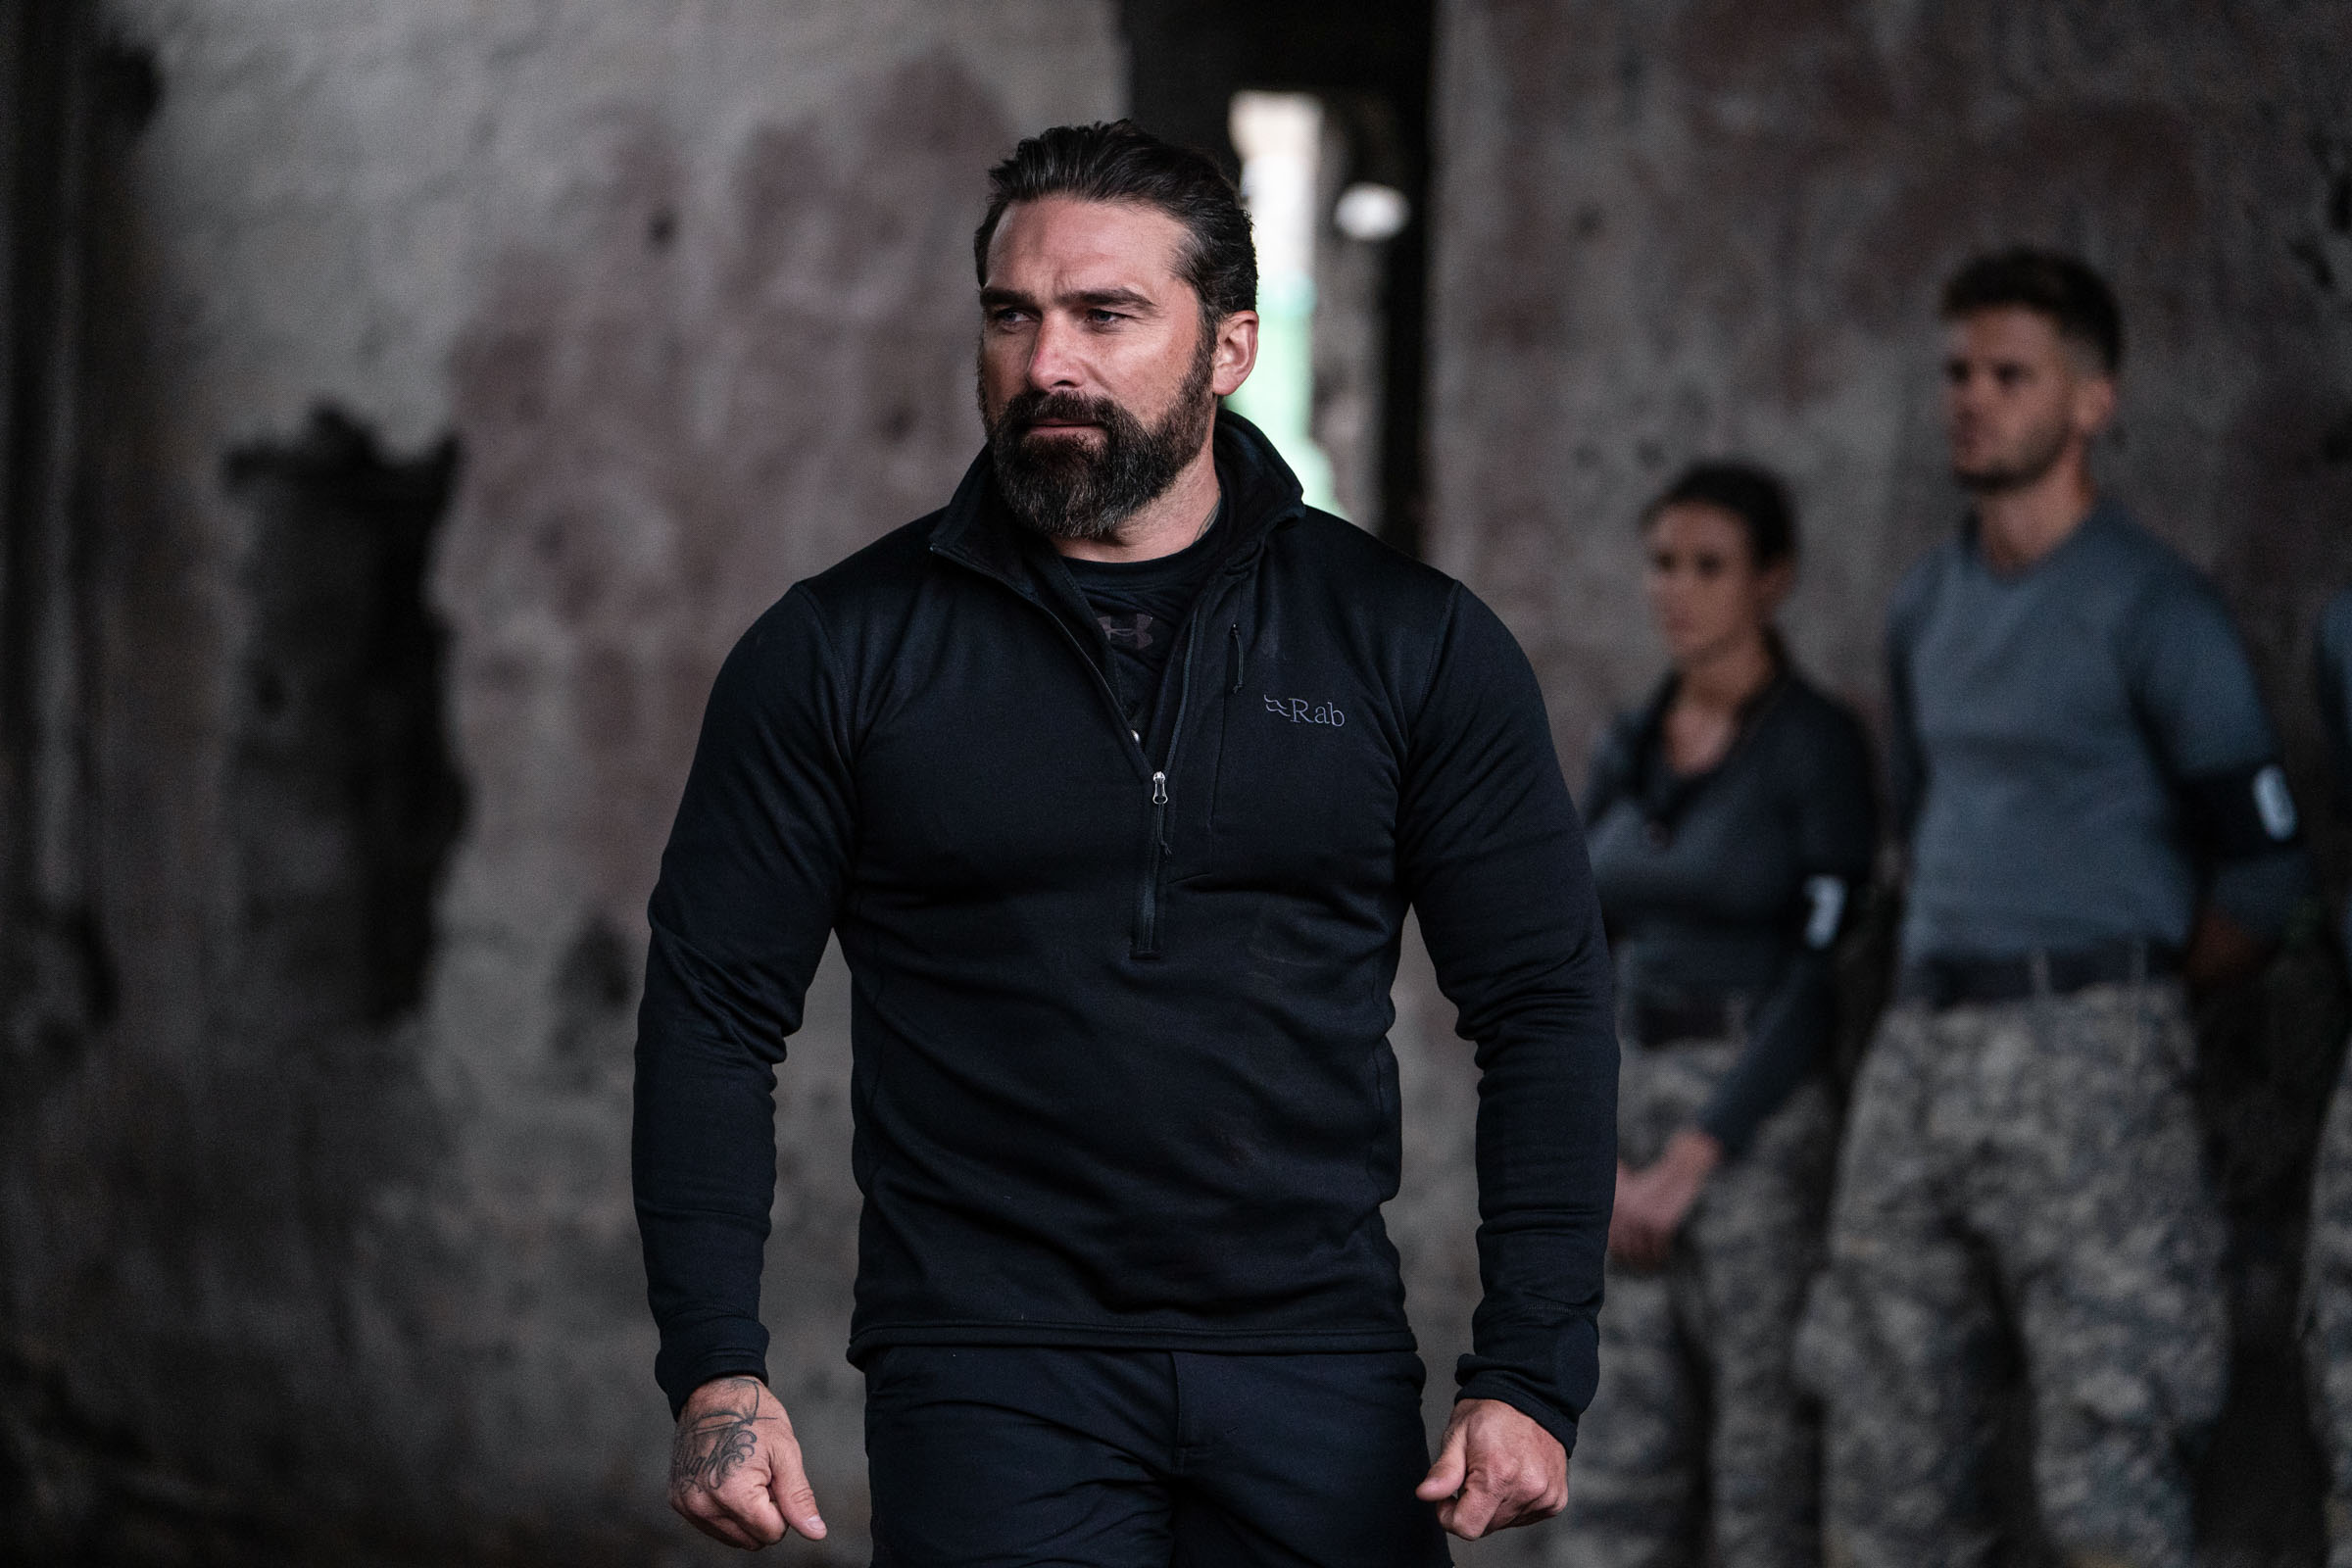 Chief Instructor Ant Middleton during the 2 vs 1 boxing  Episode 1 - Courage  Minnow Films / Channel 4